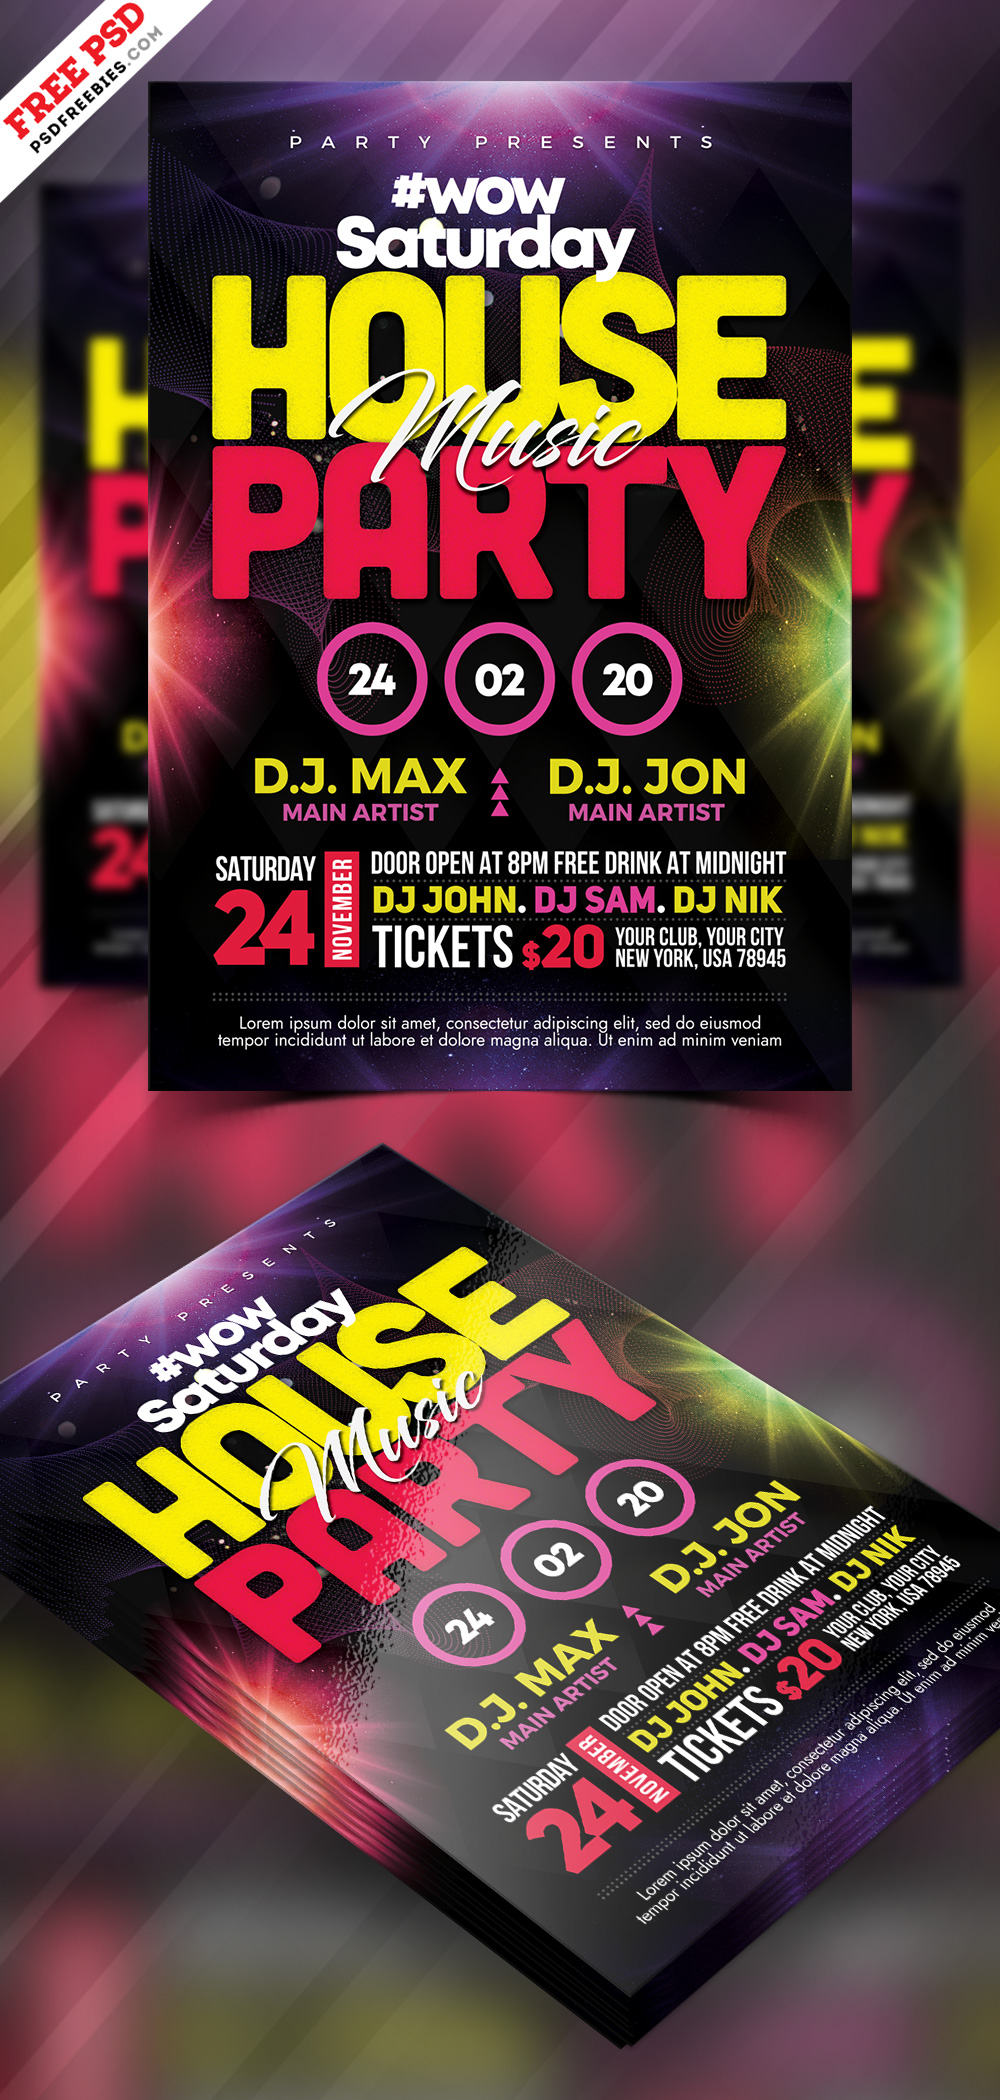 House Party Flyer Design Free PSD